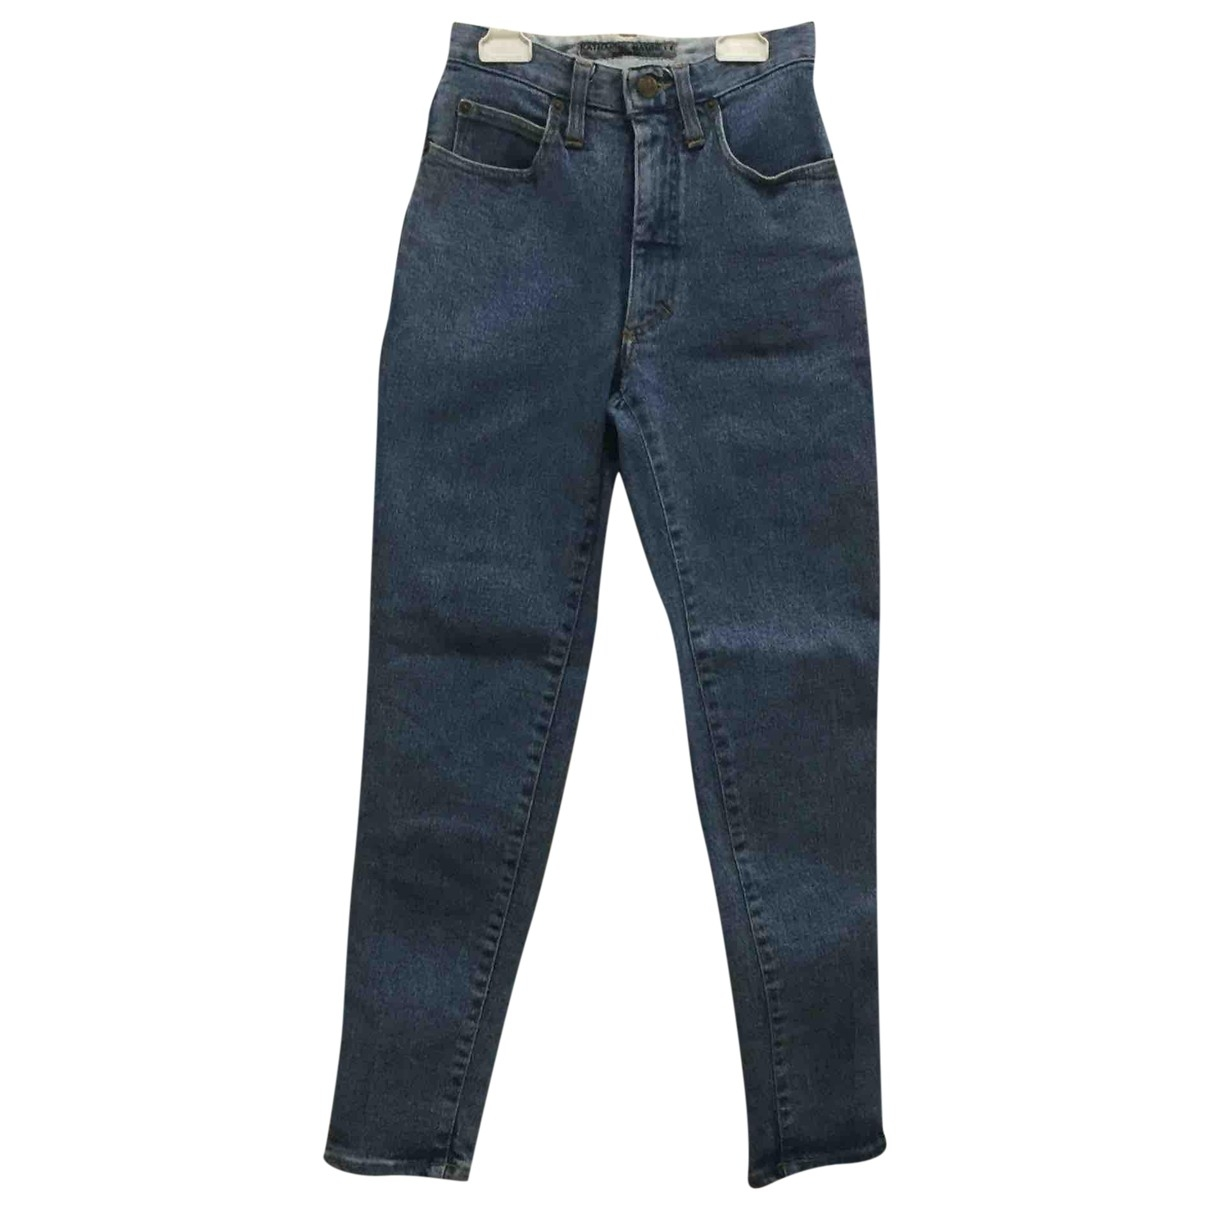 Katharine Hamnett \N Blue Denim - Jeans Trousers for Women S International